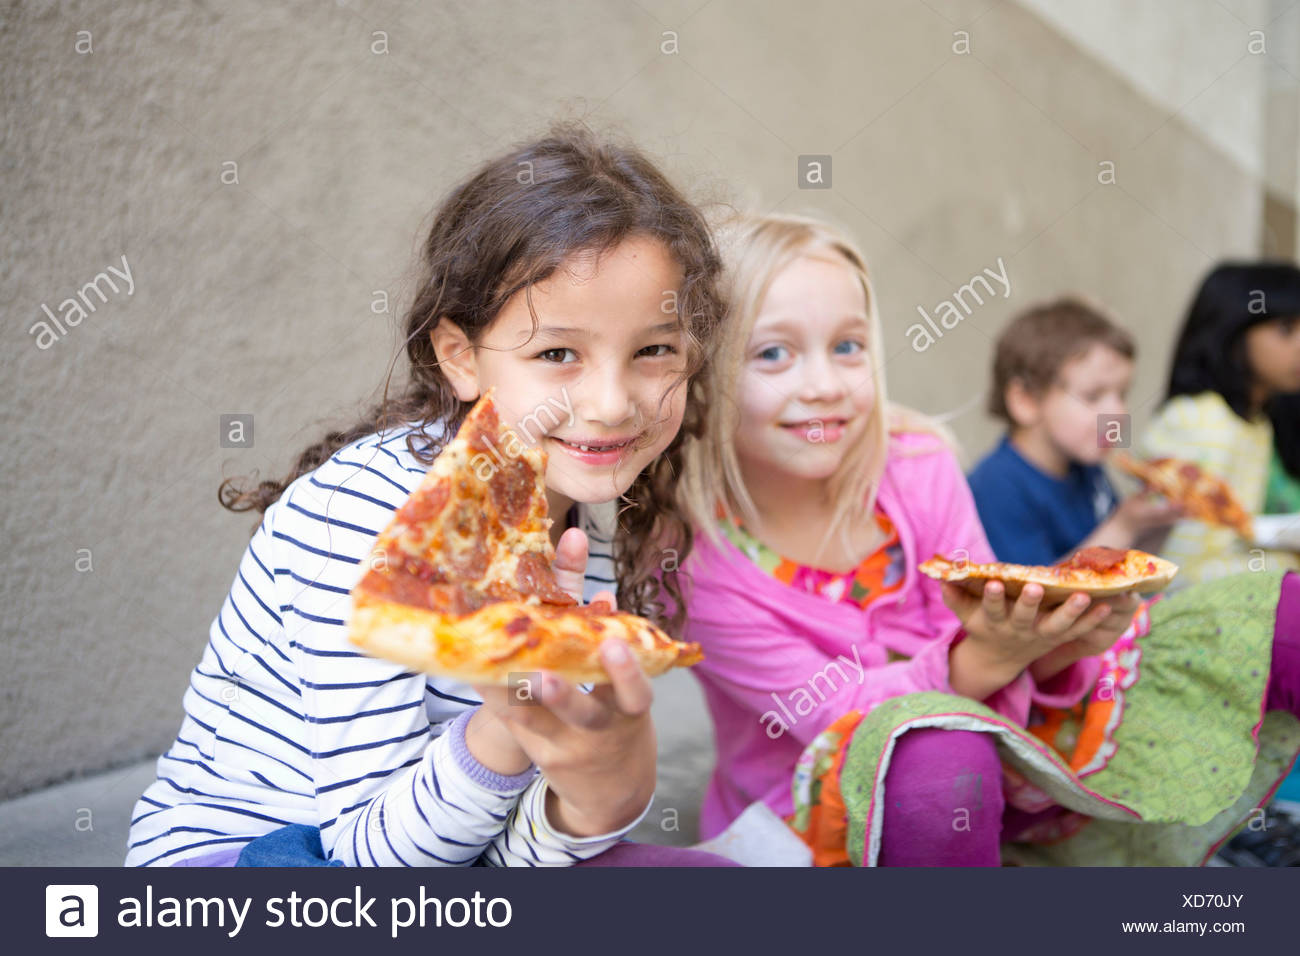 Small group of children eating pizza outdoors - Stock Image